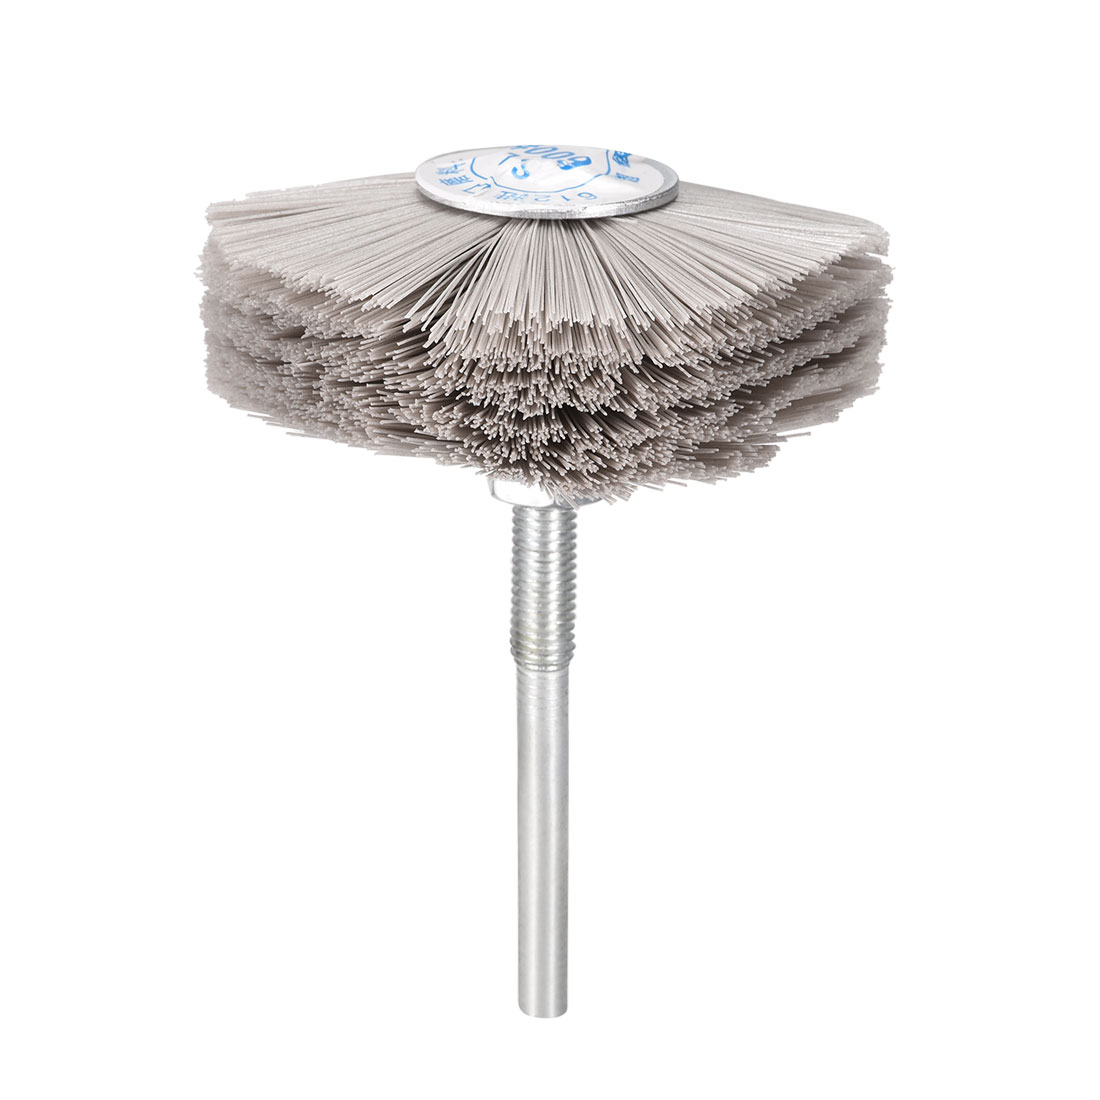 Abrasive Nylon Wheel Brush 600 Grits with 1/4 inch Shank for Polish Grinder